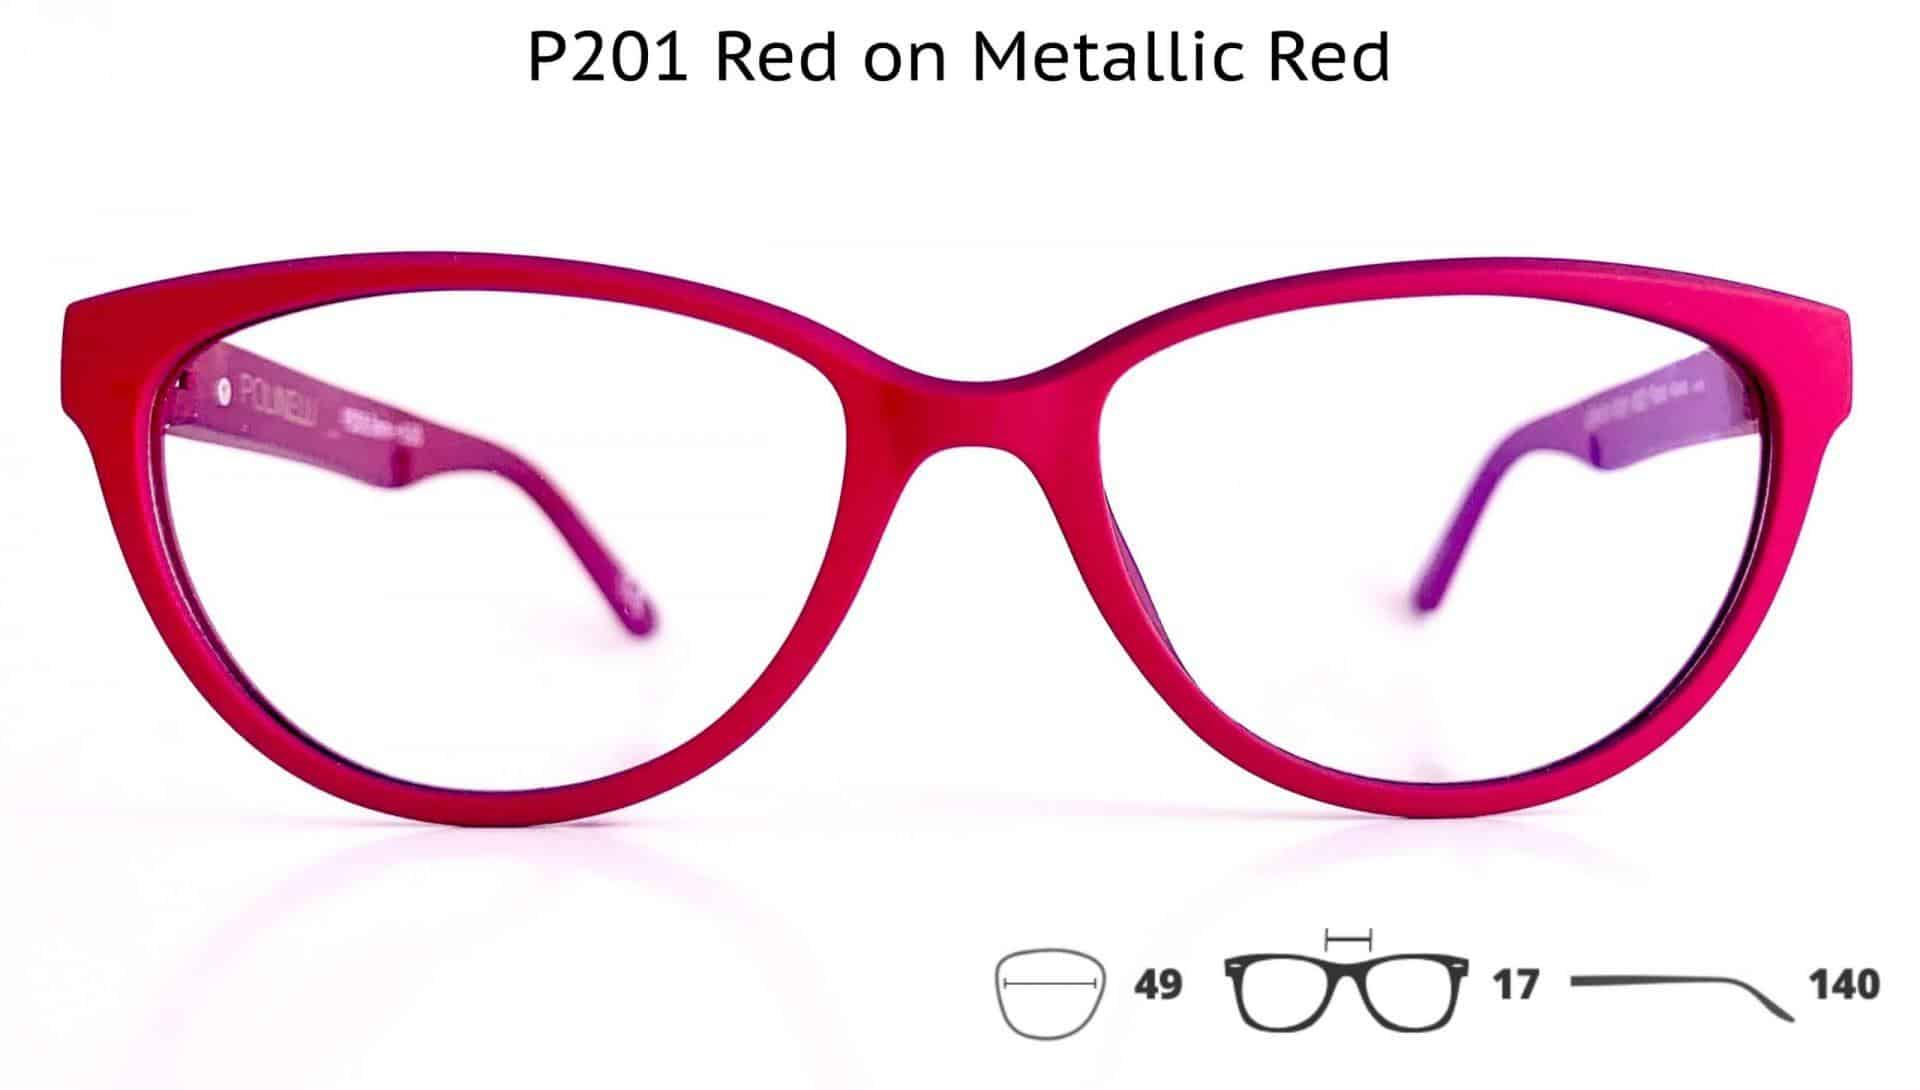 P201 Red on Metallic Red